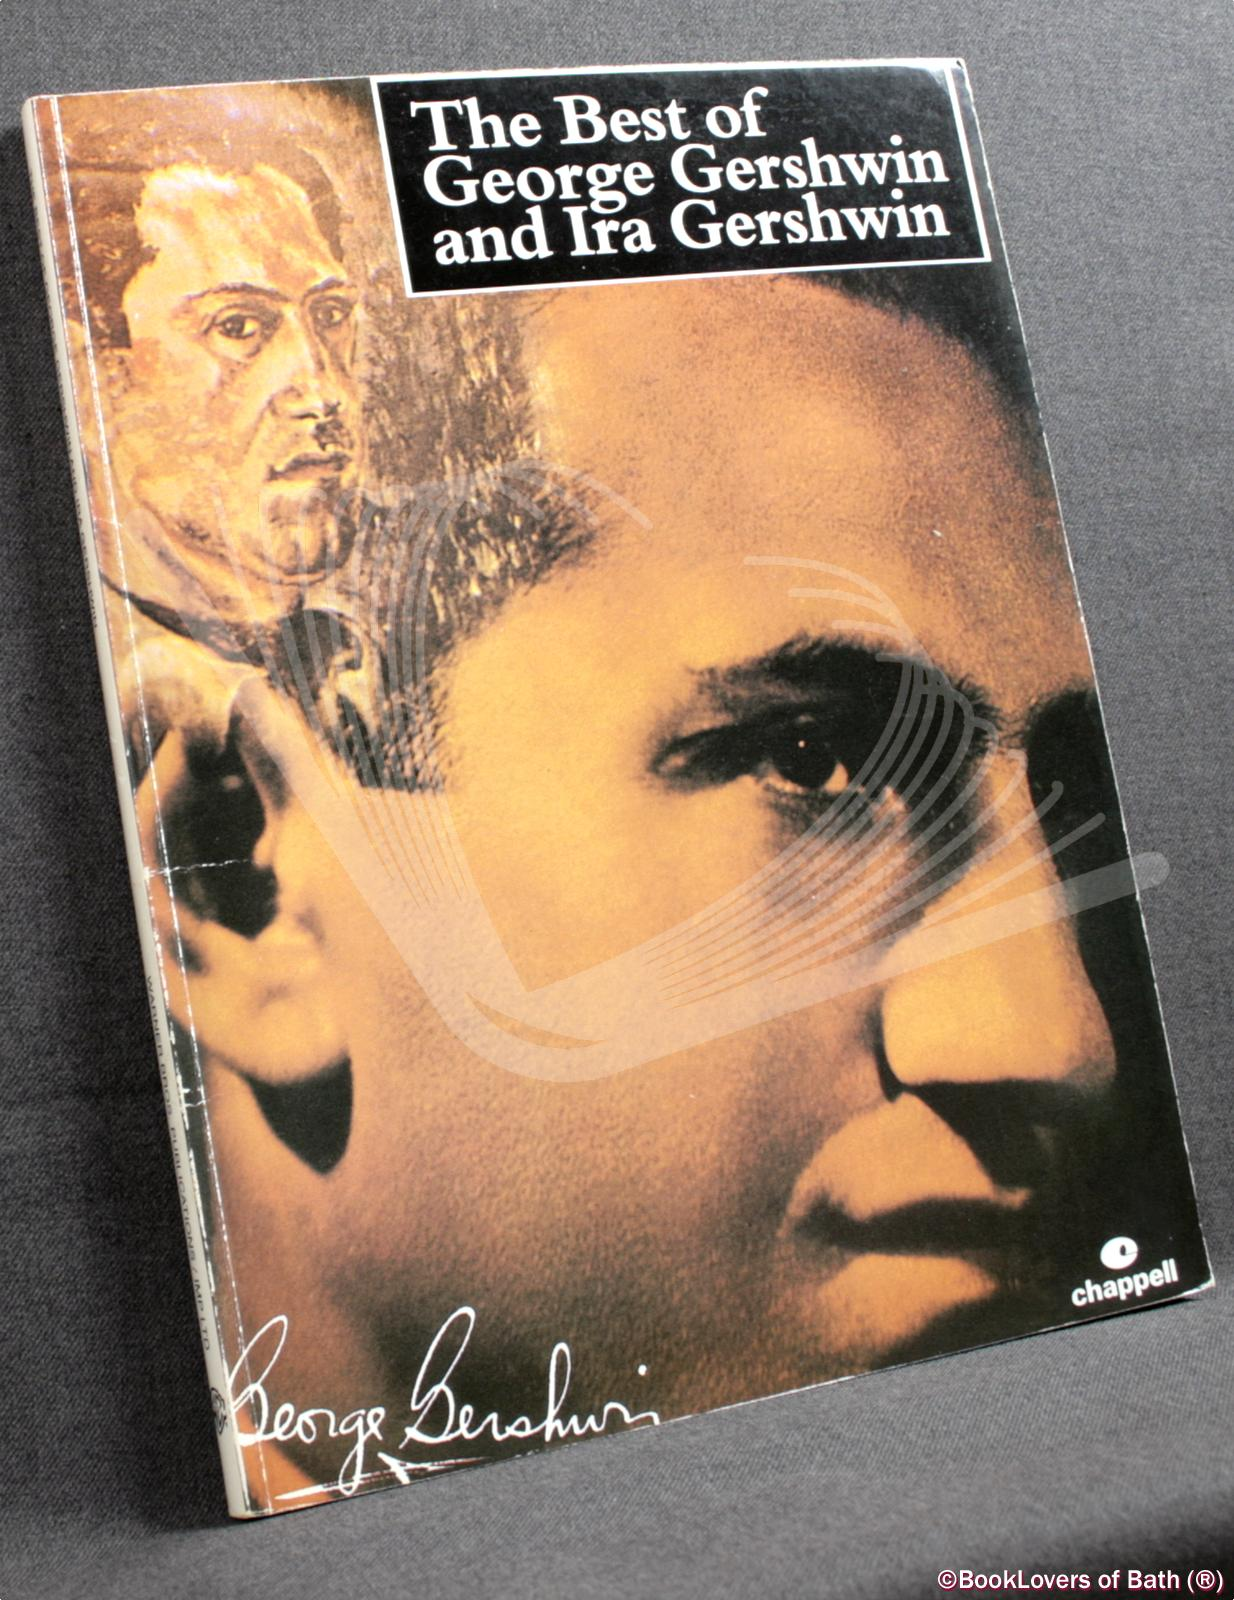 The Best of George Gershwin and Ira Gershwin - Anon.